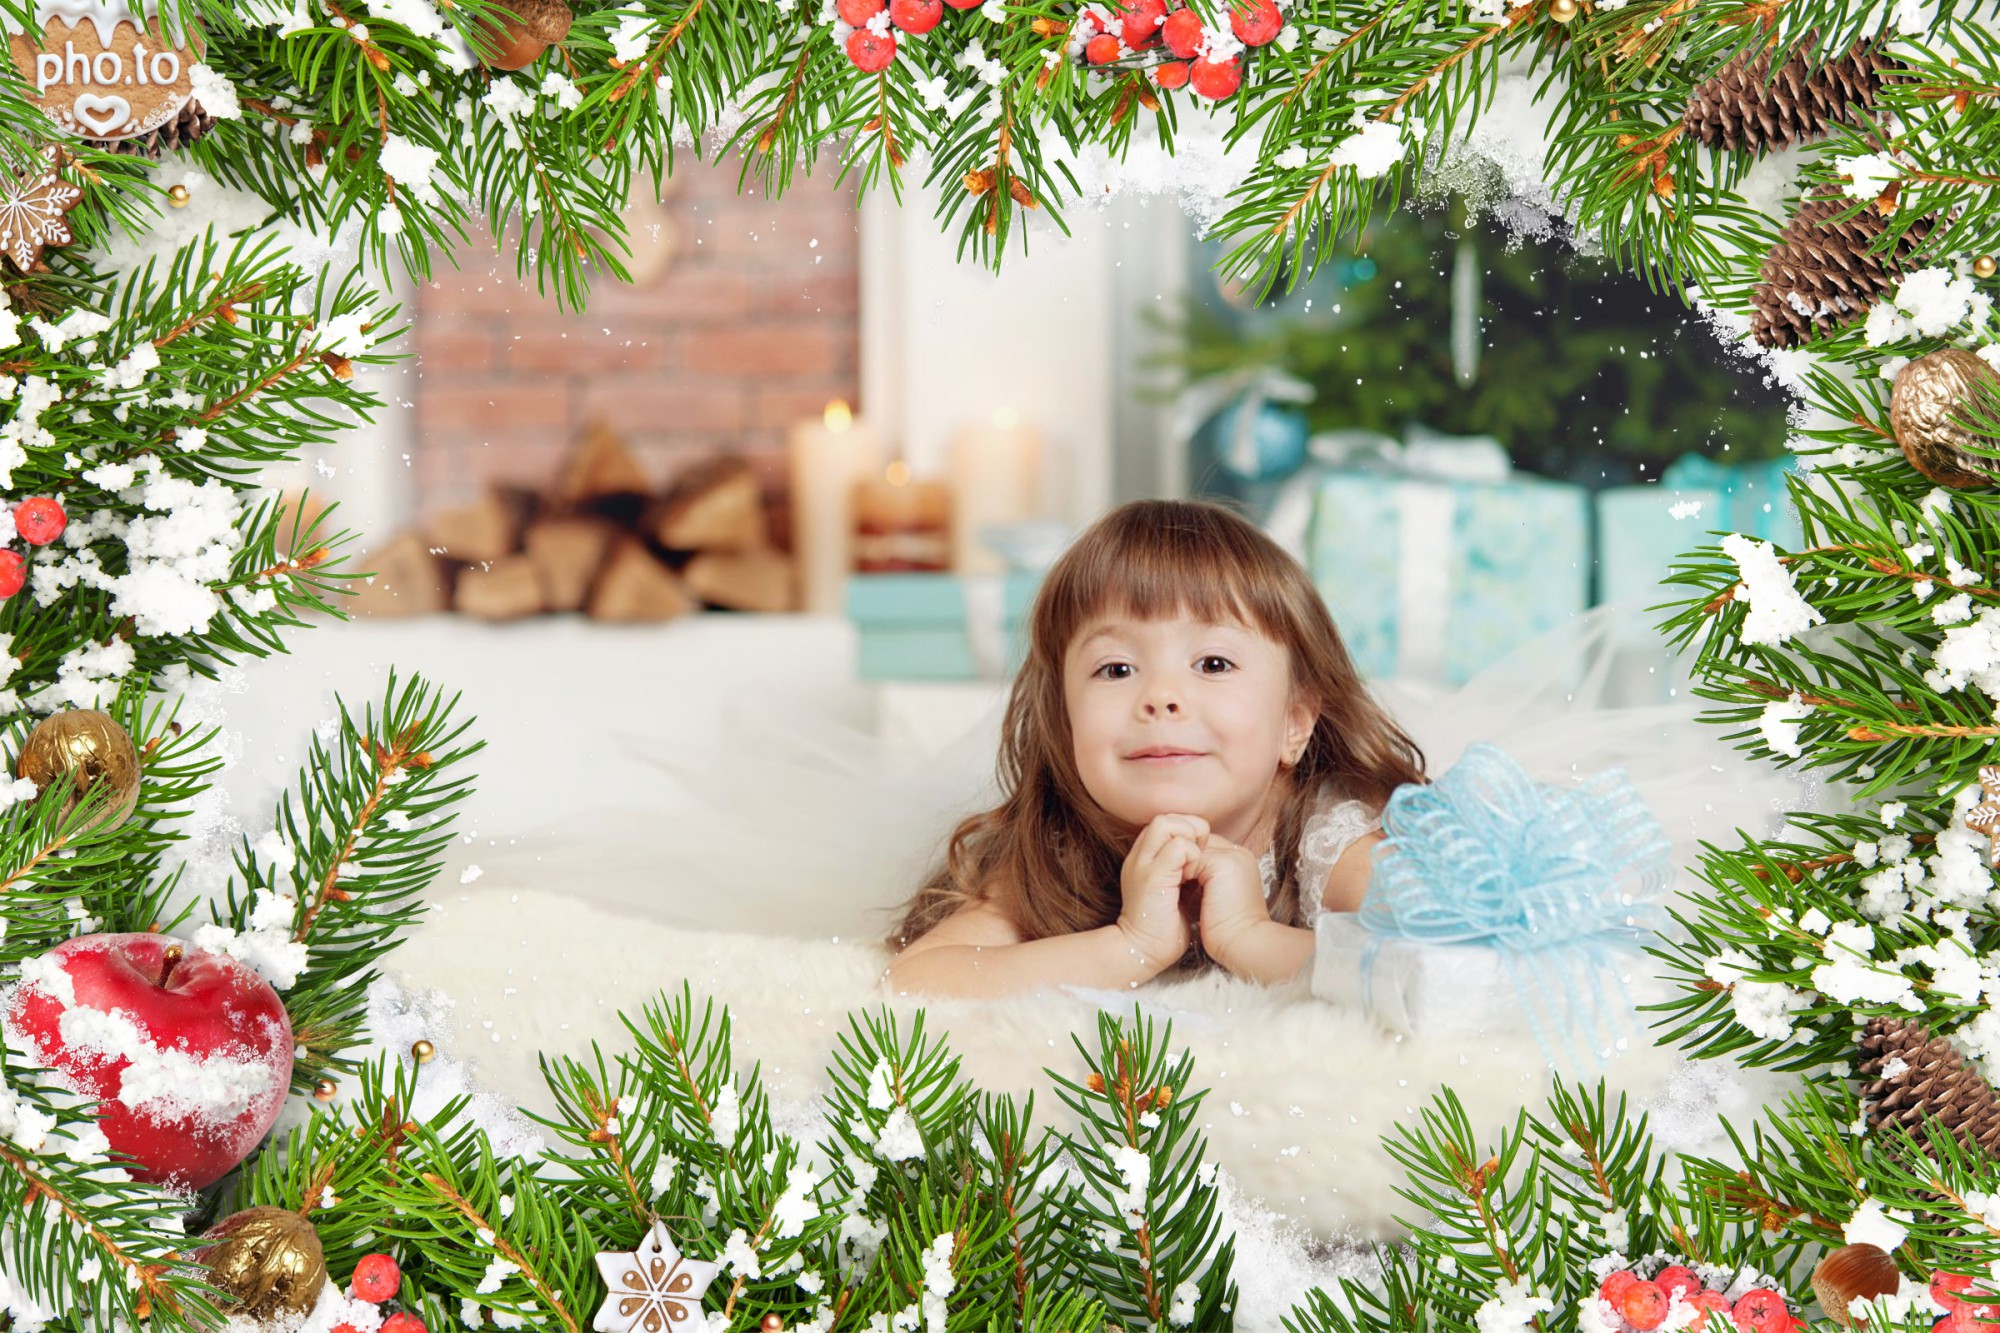 Atmospheric virtual Christmas card with little girl making her big wish